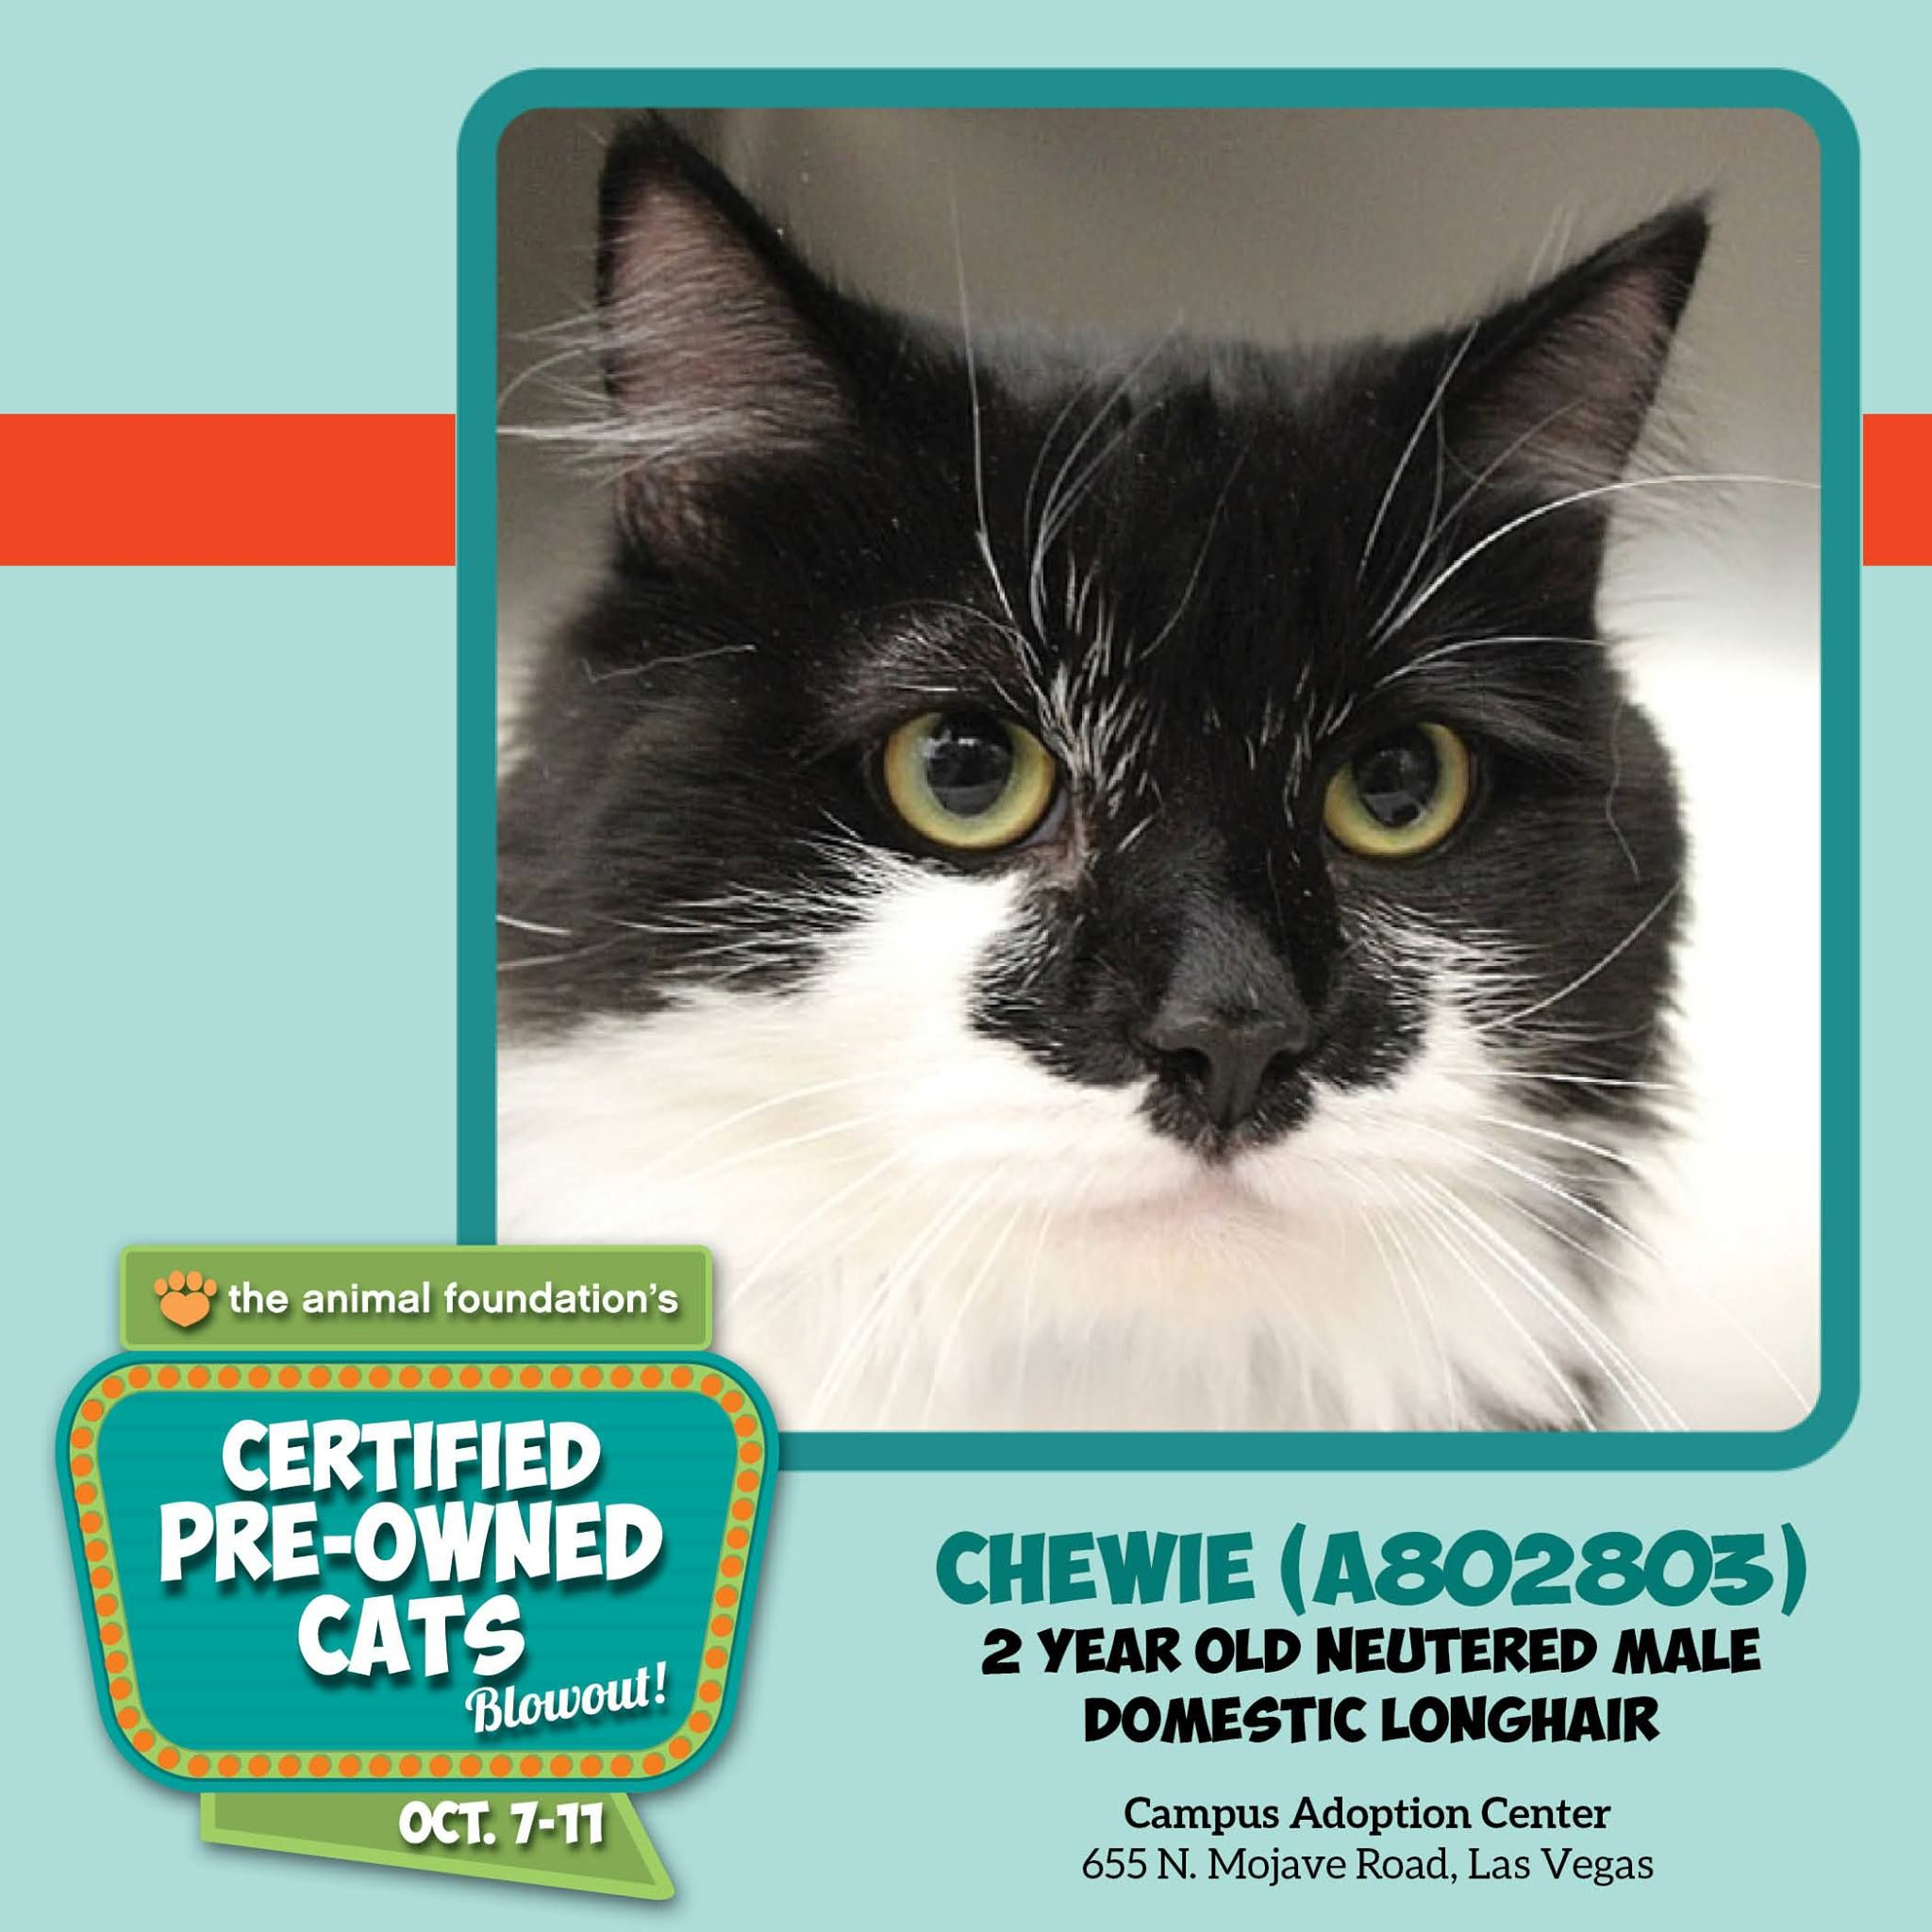 Only A Few Hours Left To Adopt A Fee Waived Cat Great Cats Like Chewie Are Waiting For You At Our Campus Adoption Center Open Kittens Cats Cat Adoption